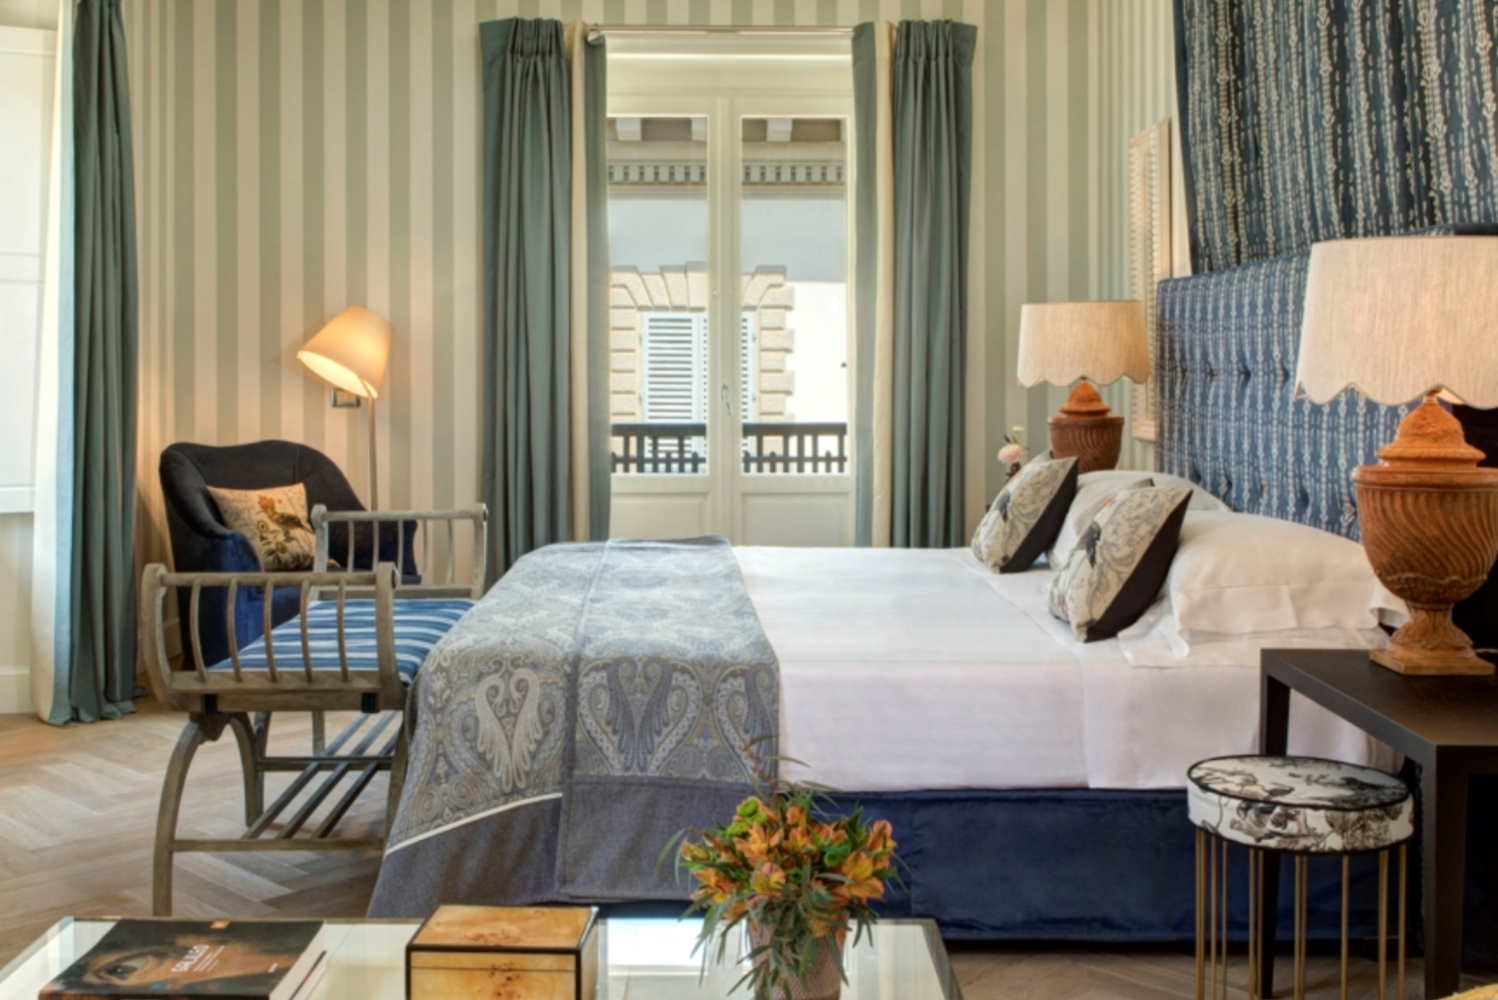 The Hotel Savoy, a Rocco Forte Hotel in Florence, Italy, opened its new Duomo Presidential Suite.